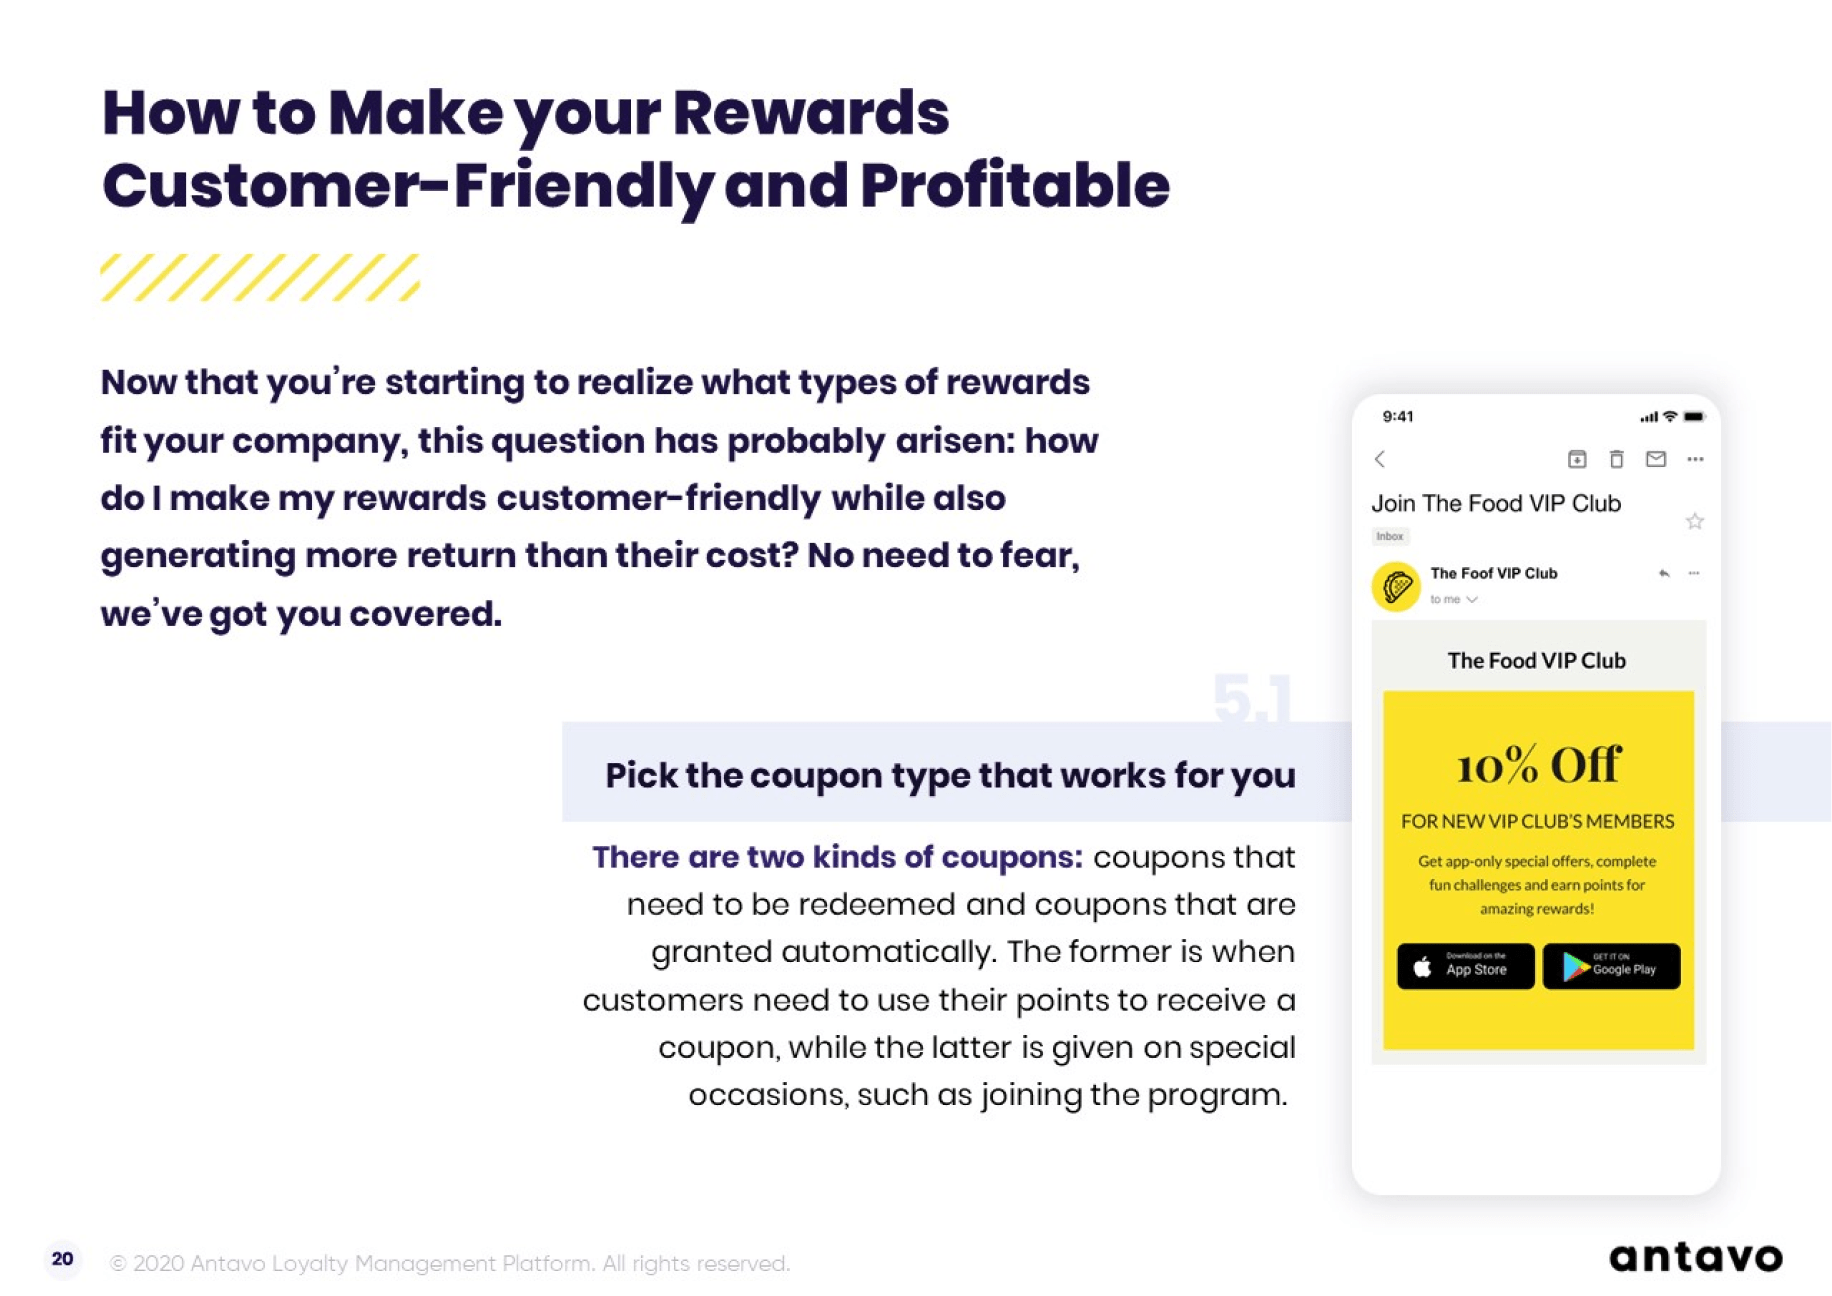 Antavo's Ebook: The Ultimate Guide to Loyalty Program Rewards- How to make your rewards customer-friendly and profitable.